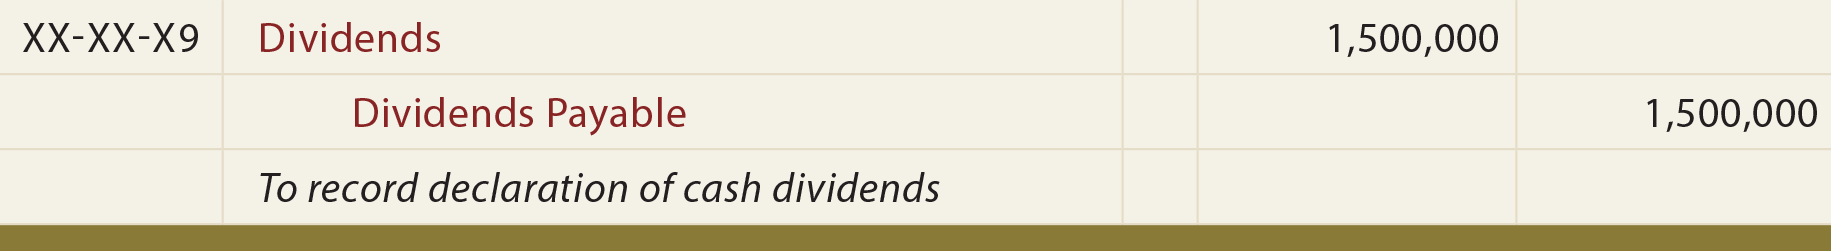 Cash Dividend General Journal Entry - To record declaration of cash dividends